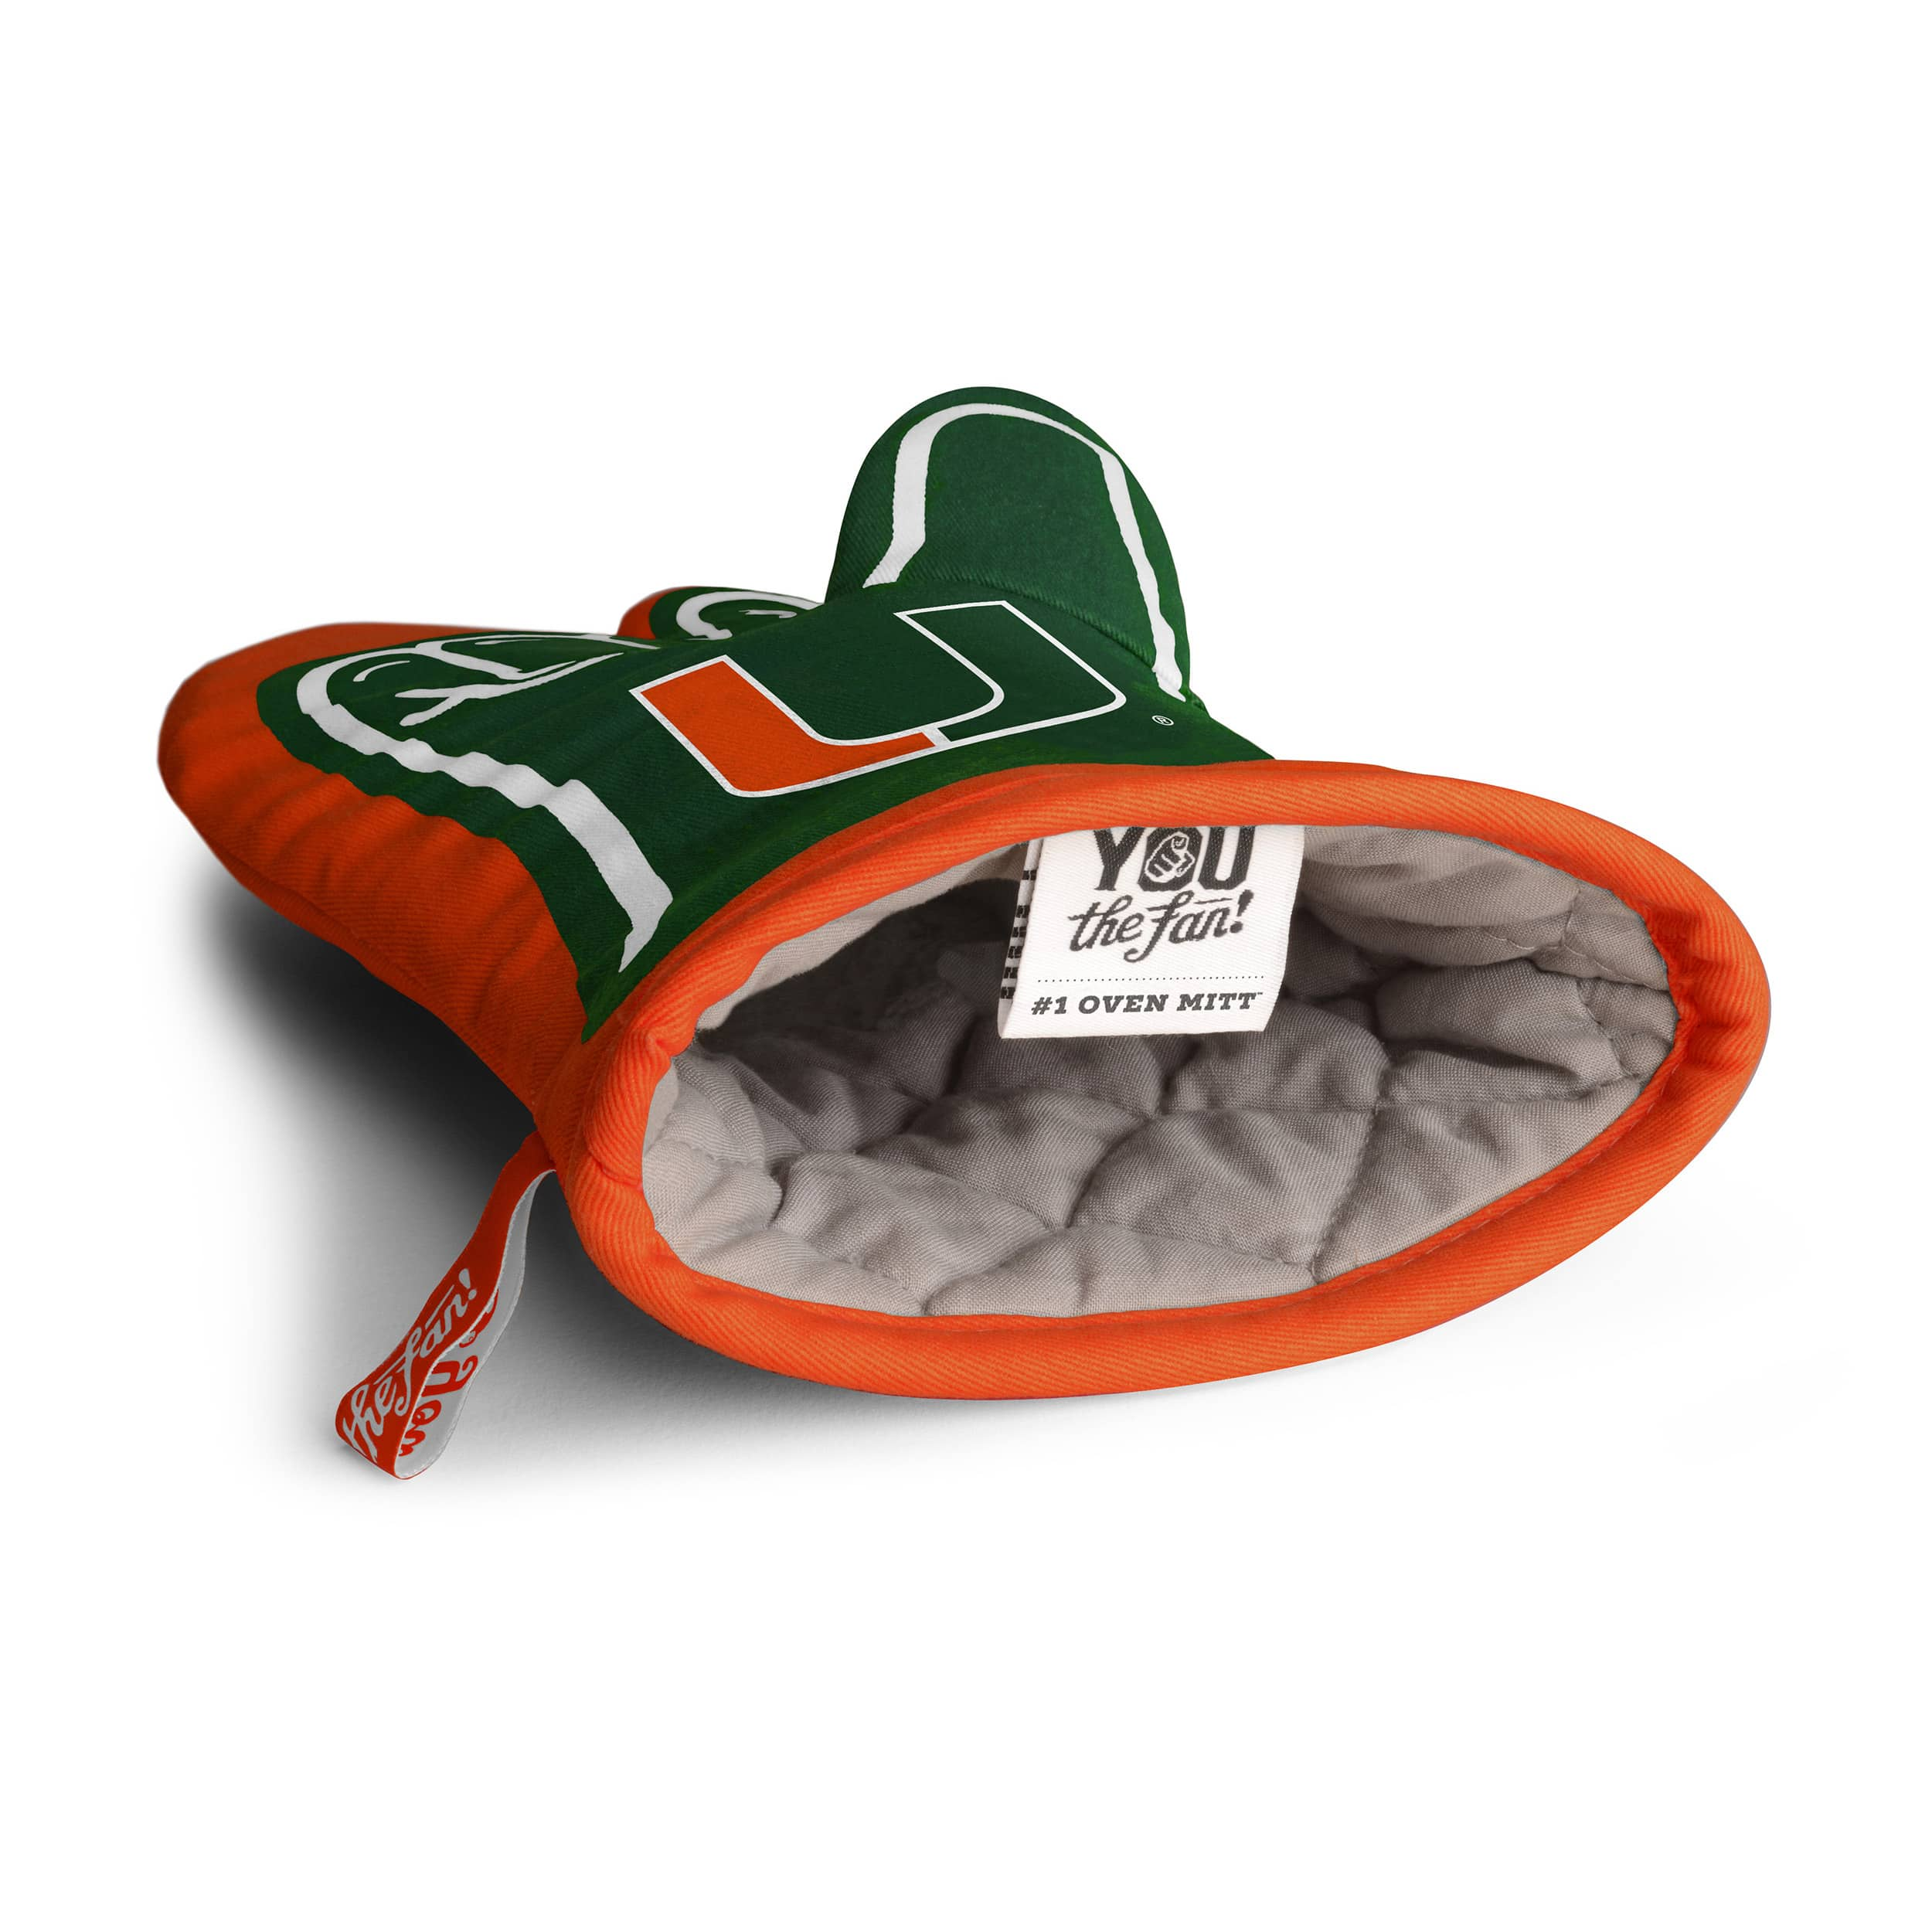 Inside of the NCAA College Oven Mitts